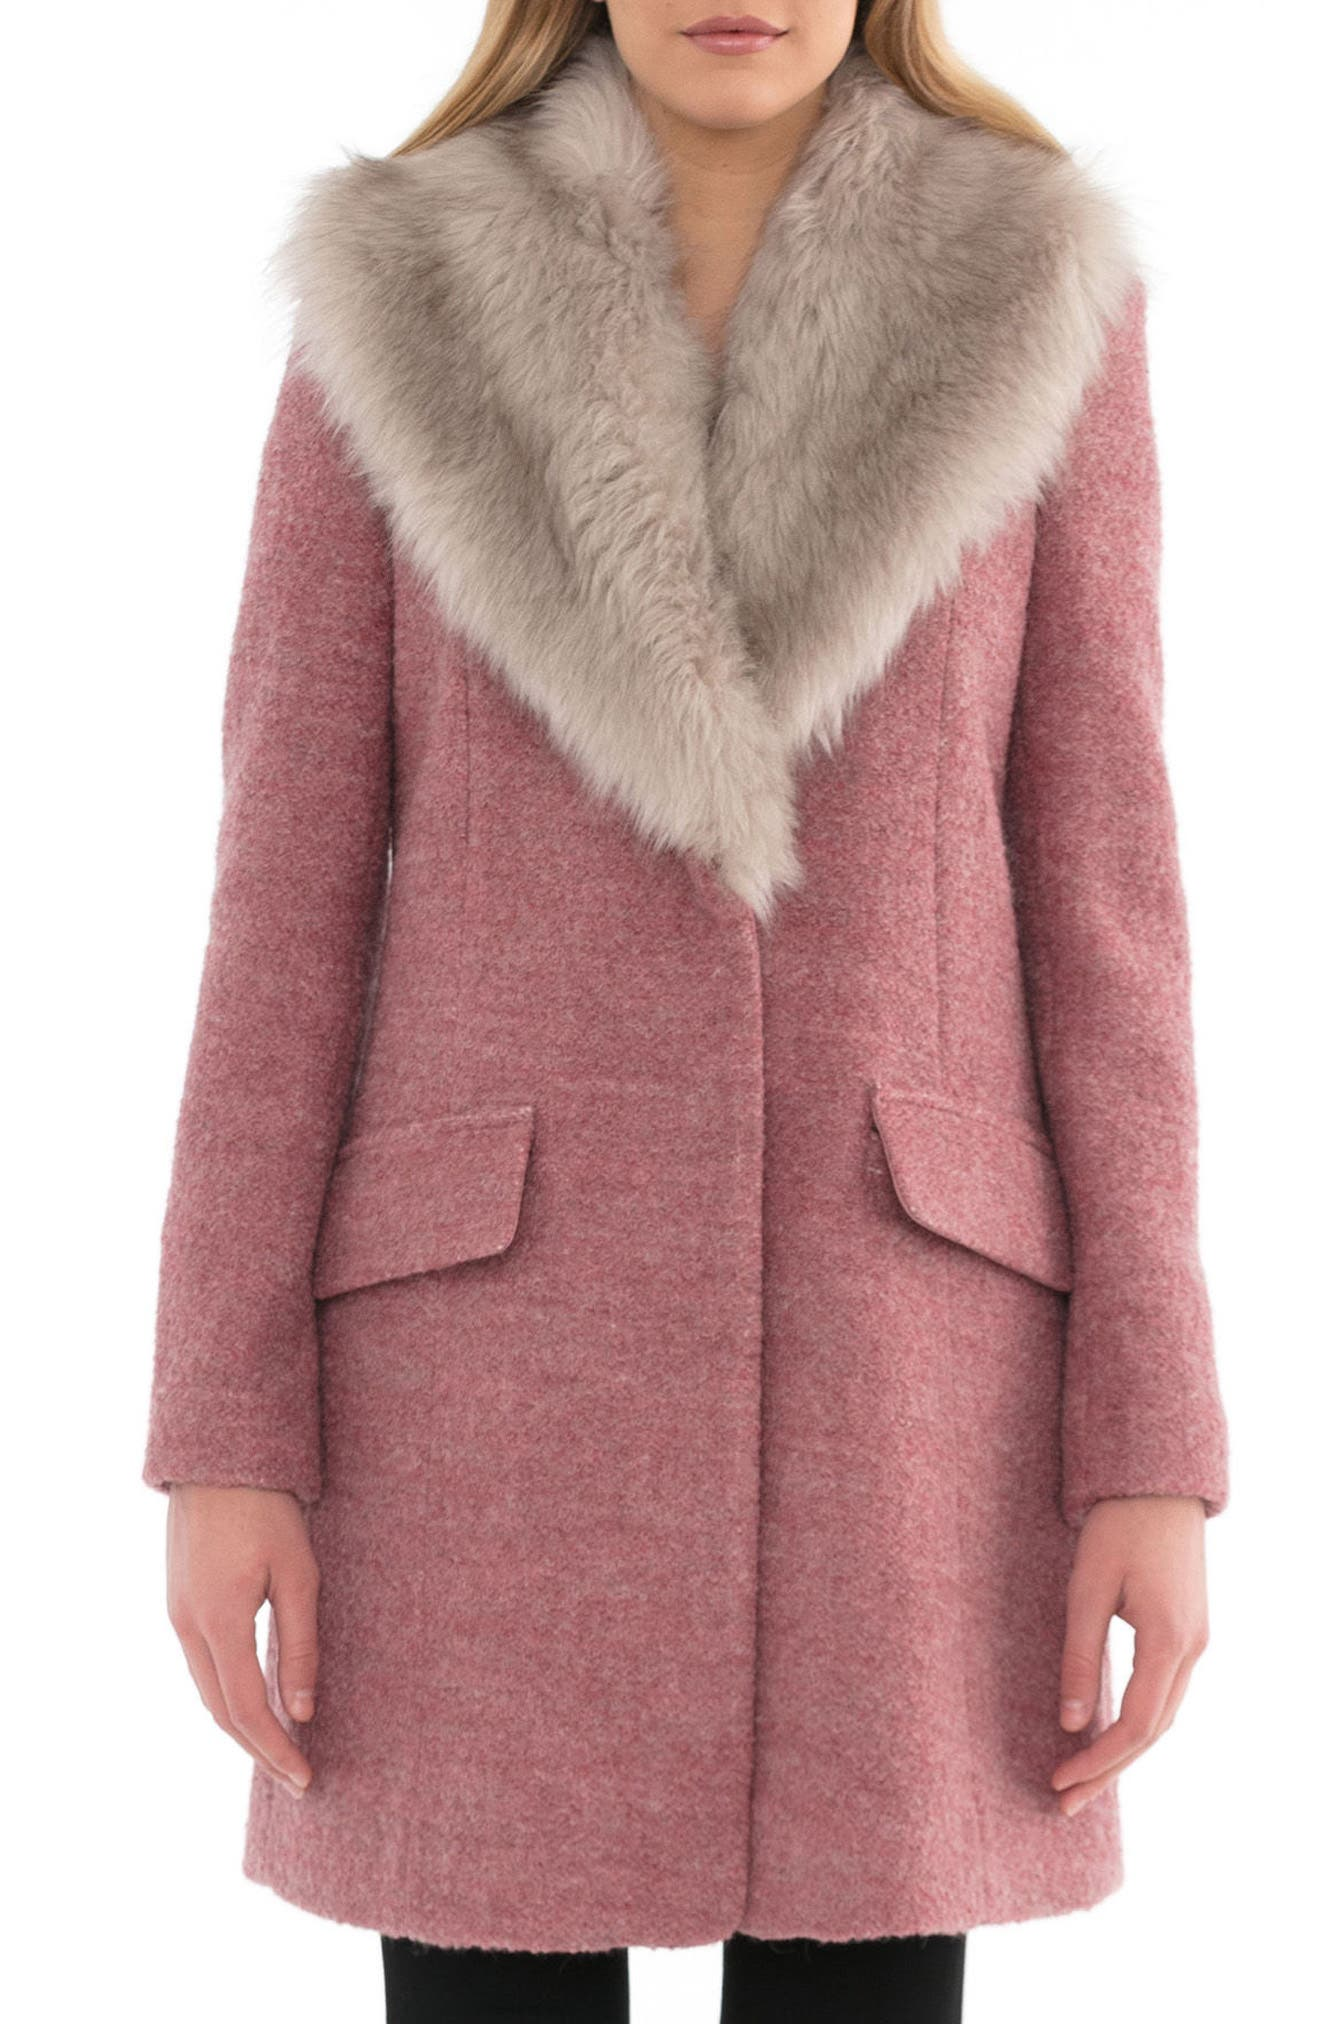 Main Image - Belle Badgley Mischka 'Holly' Faux Fur Collar Bouclé Coat